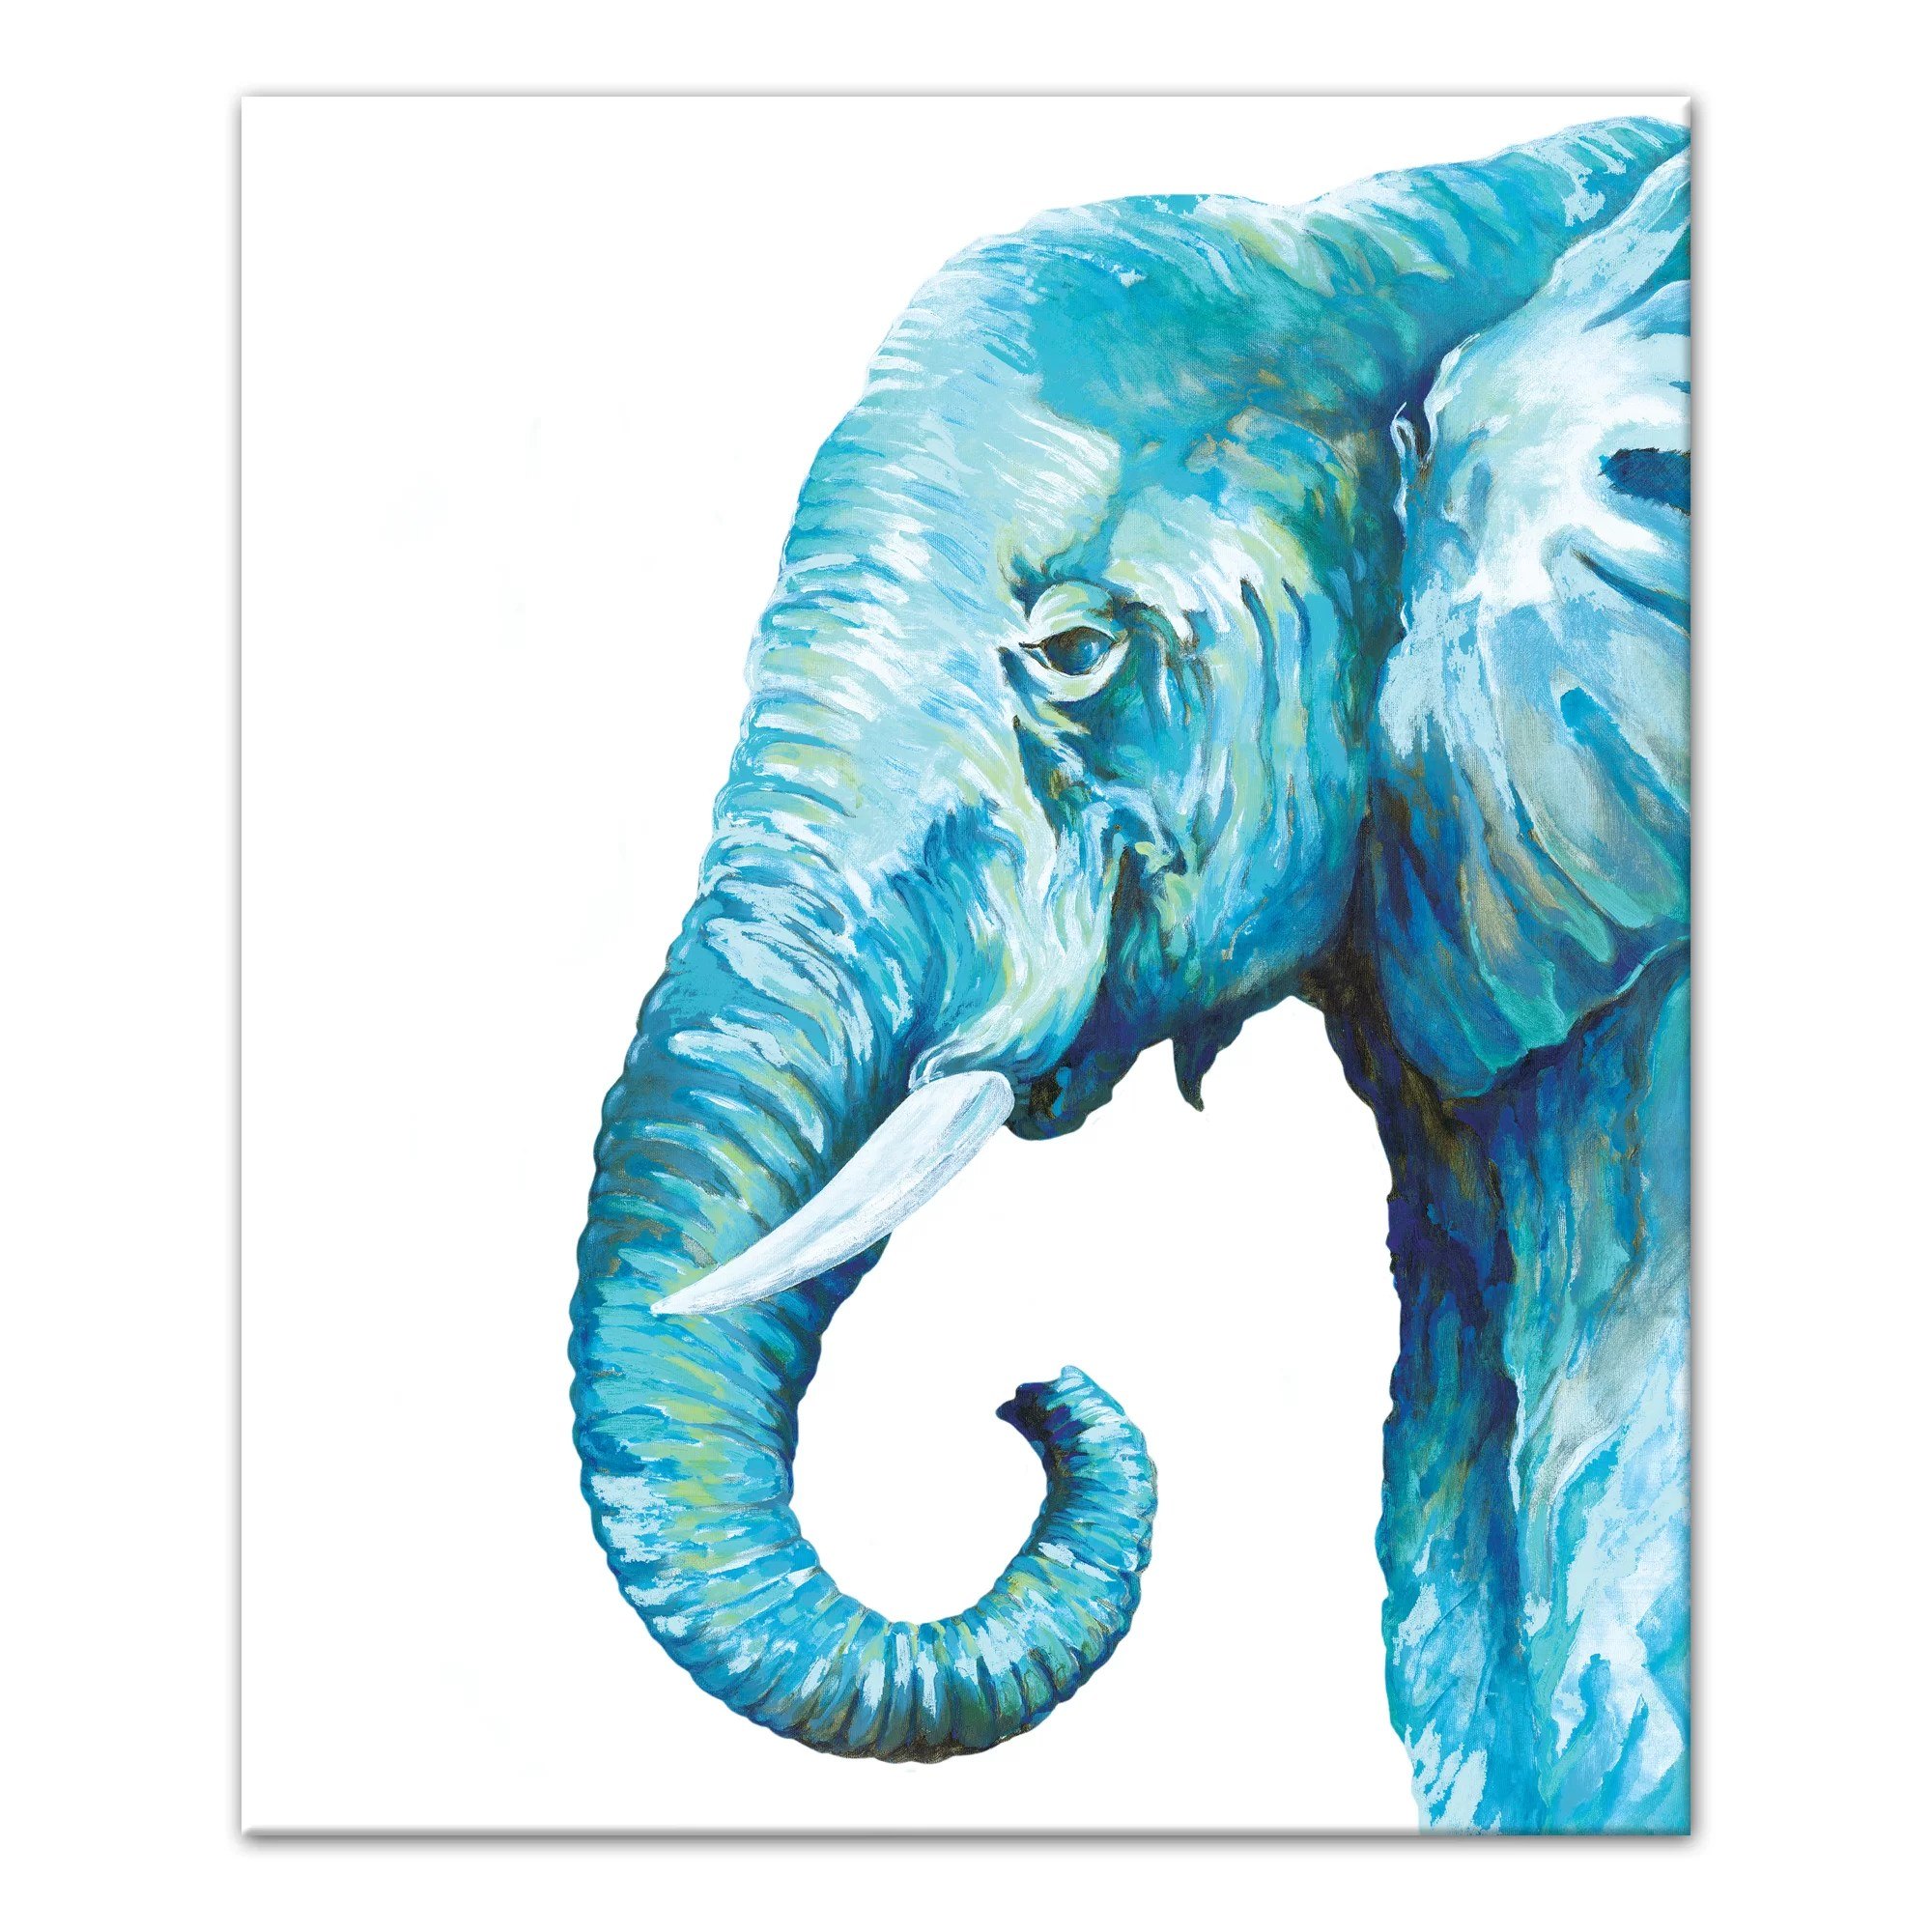 blue elephant watercolor painting